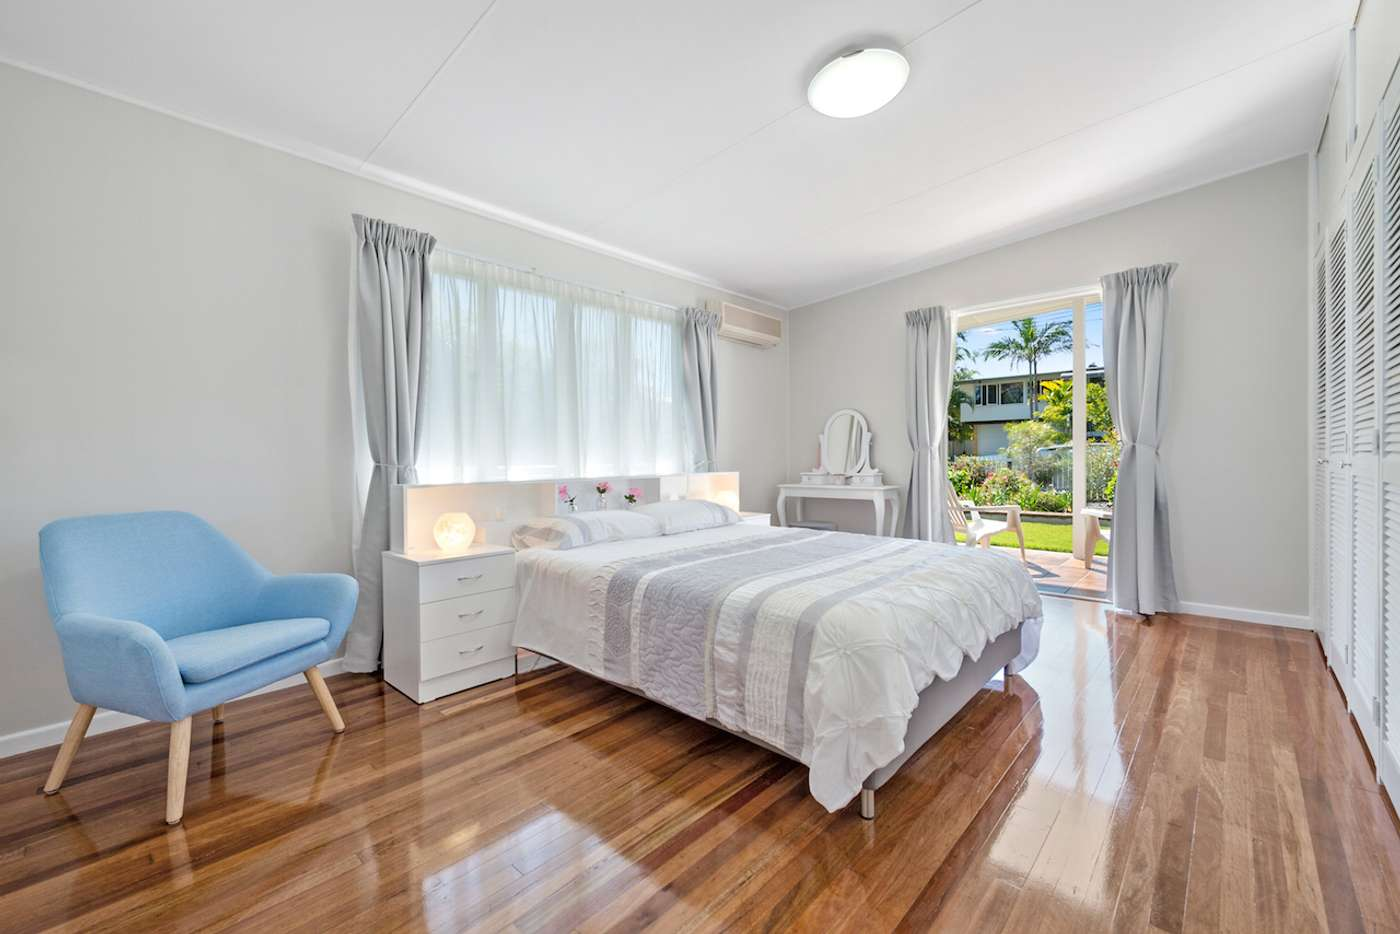 Fifth view of Homely house listing, 31 Suncroft Street, Mount Gravatt QLD 4122